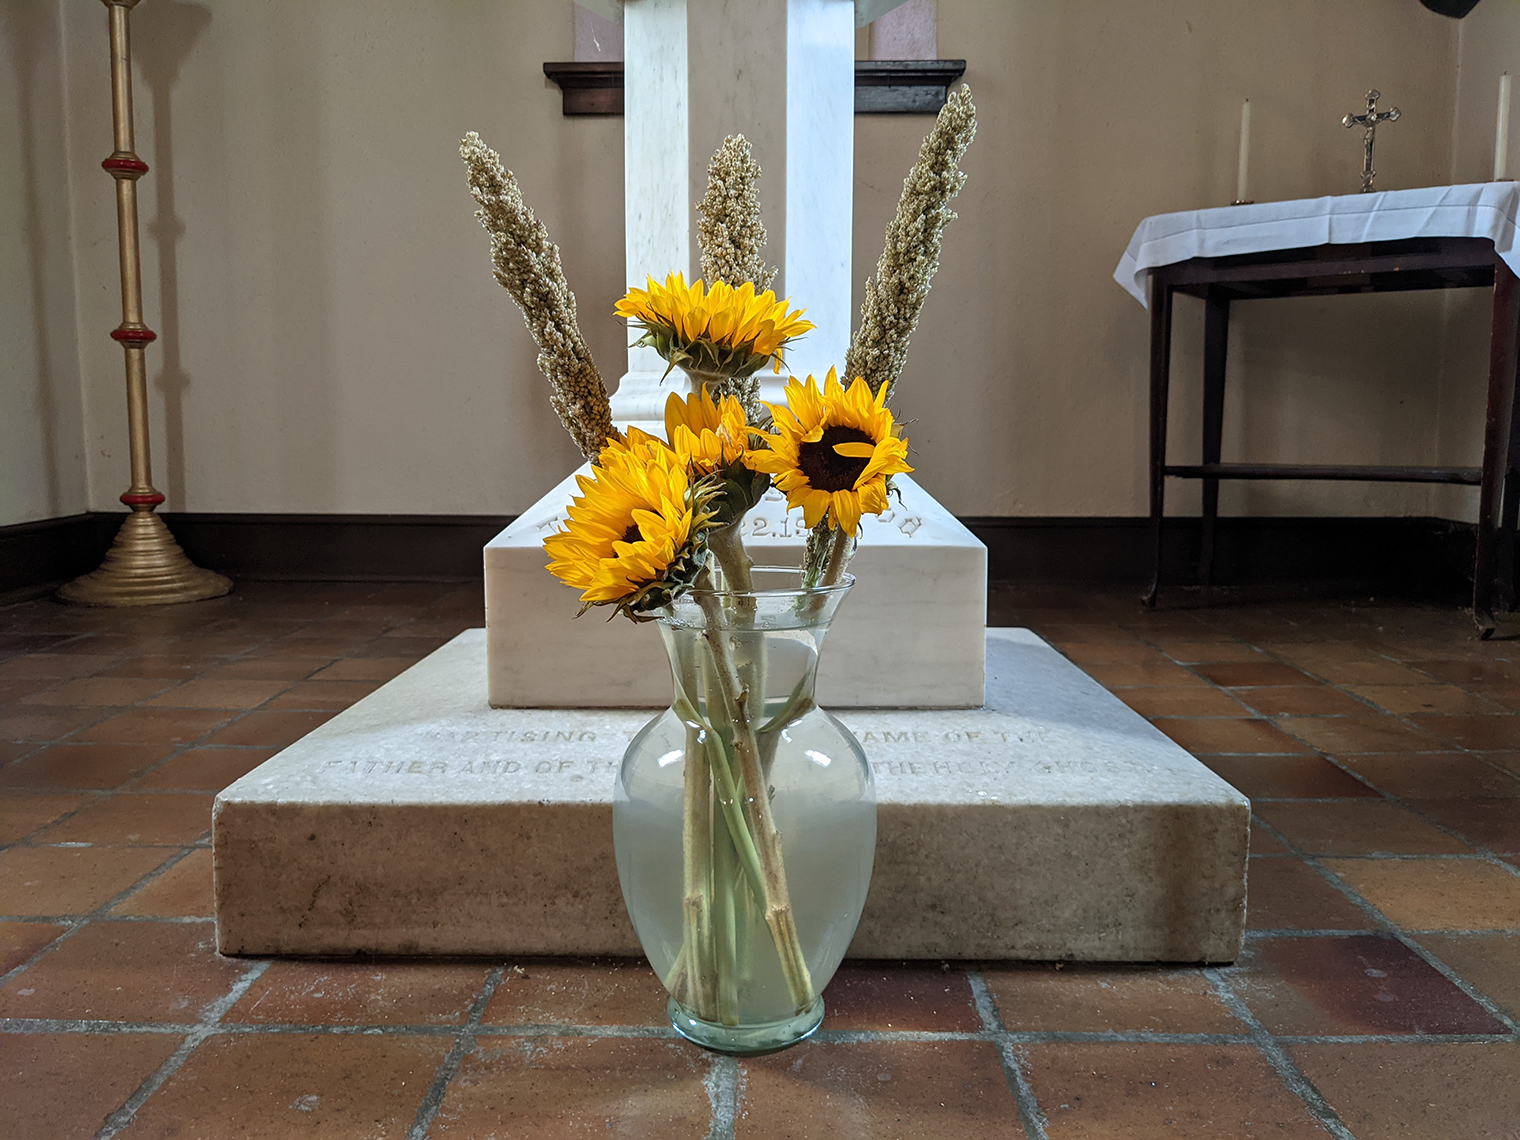 Sunflowers in a vase at foot of font